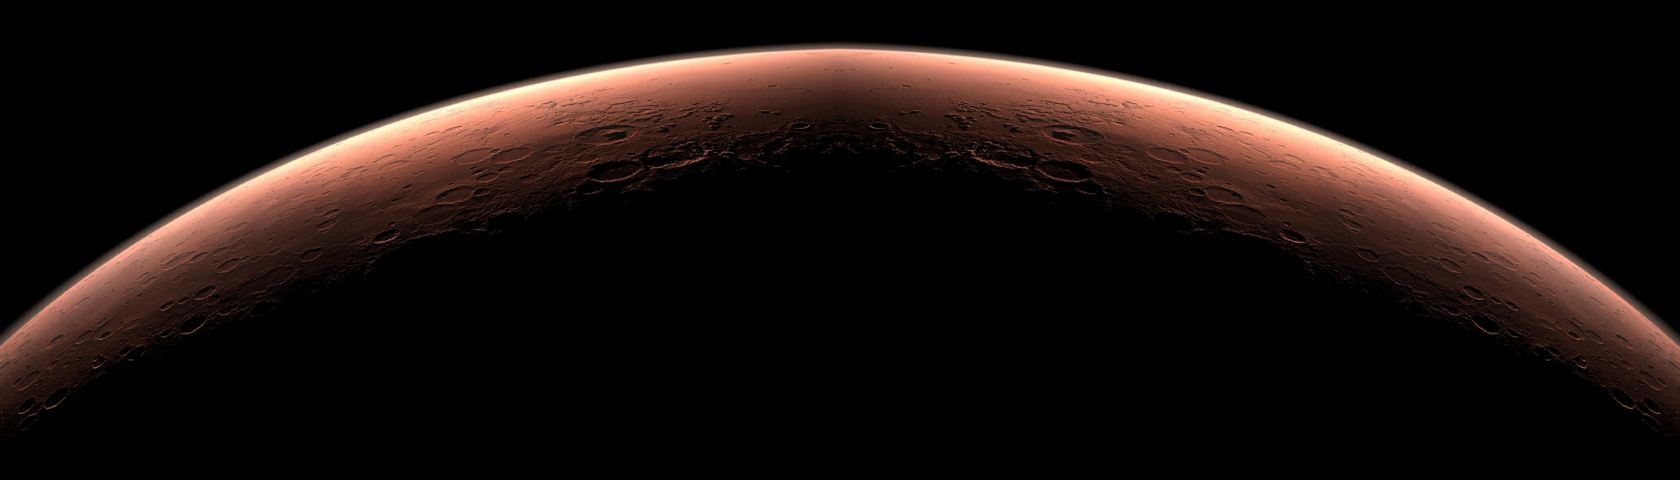 On Top of the Red Planet